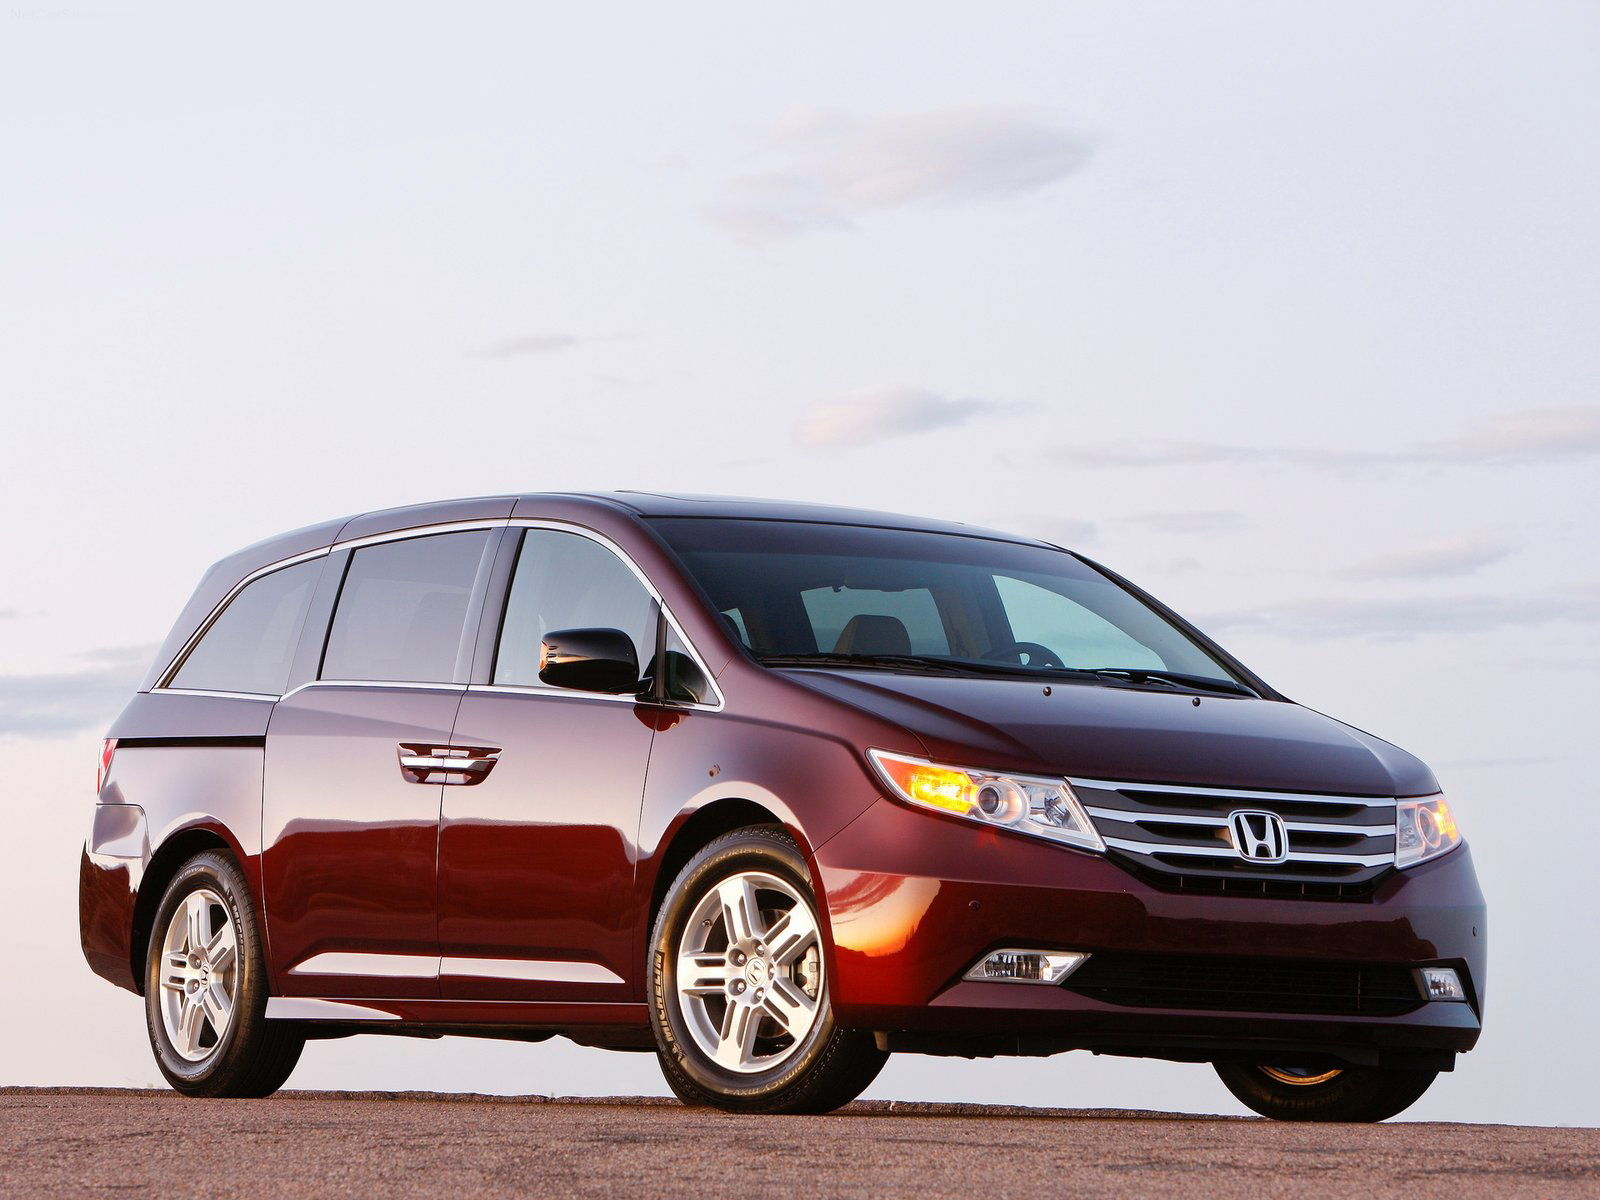 2012 honda odyssey car wallpaper review features. Black Bedroom Furniture Sets. Home Design Ideas